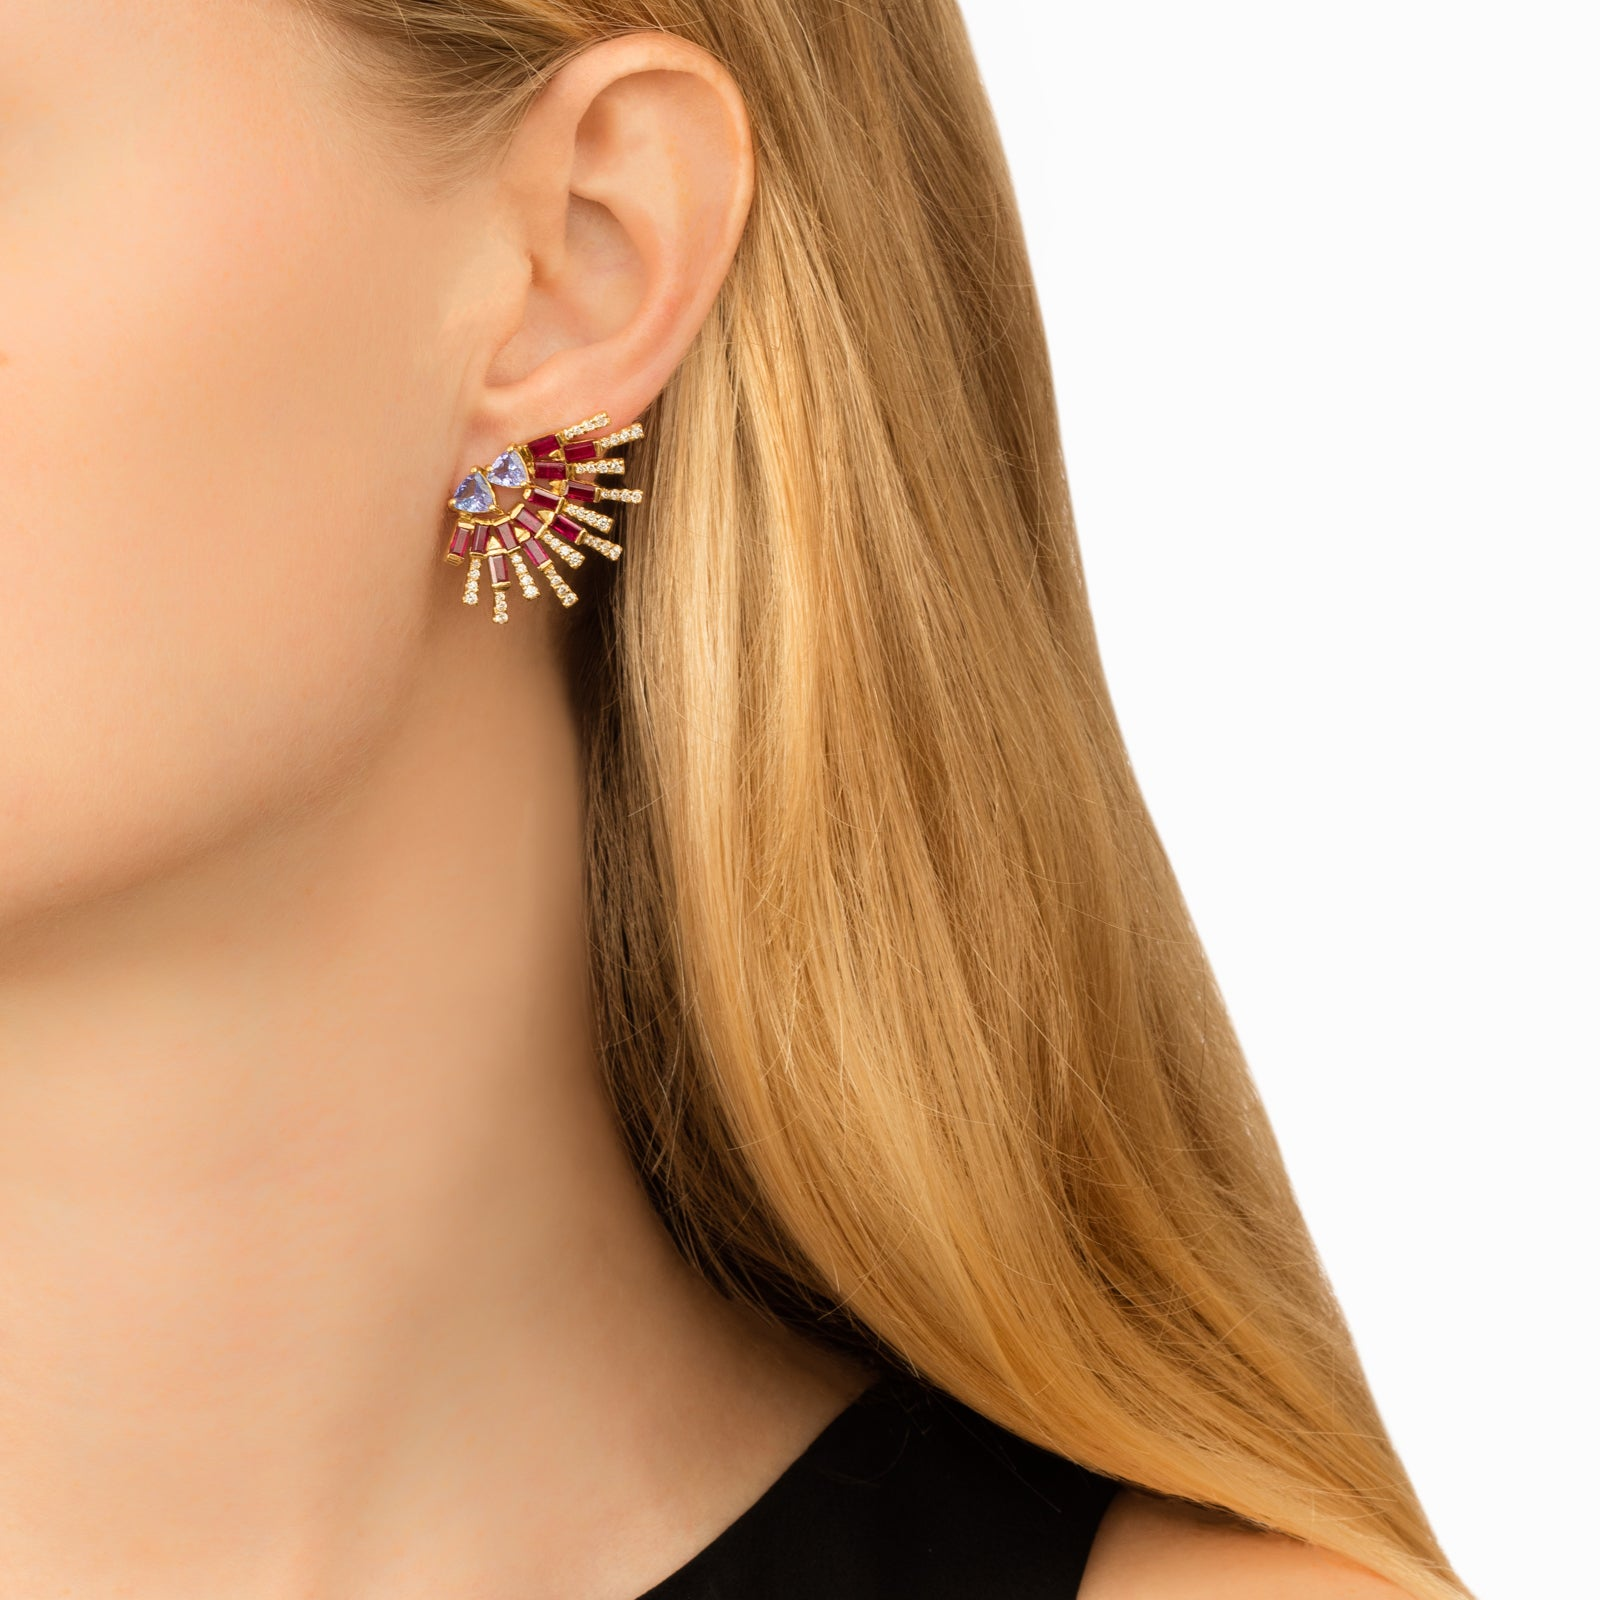 Ruby Sunshine Earrings - Carol Kauffman - Earrings | Broken English Jewelry